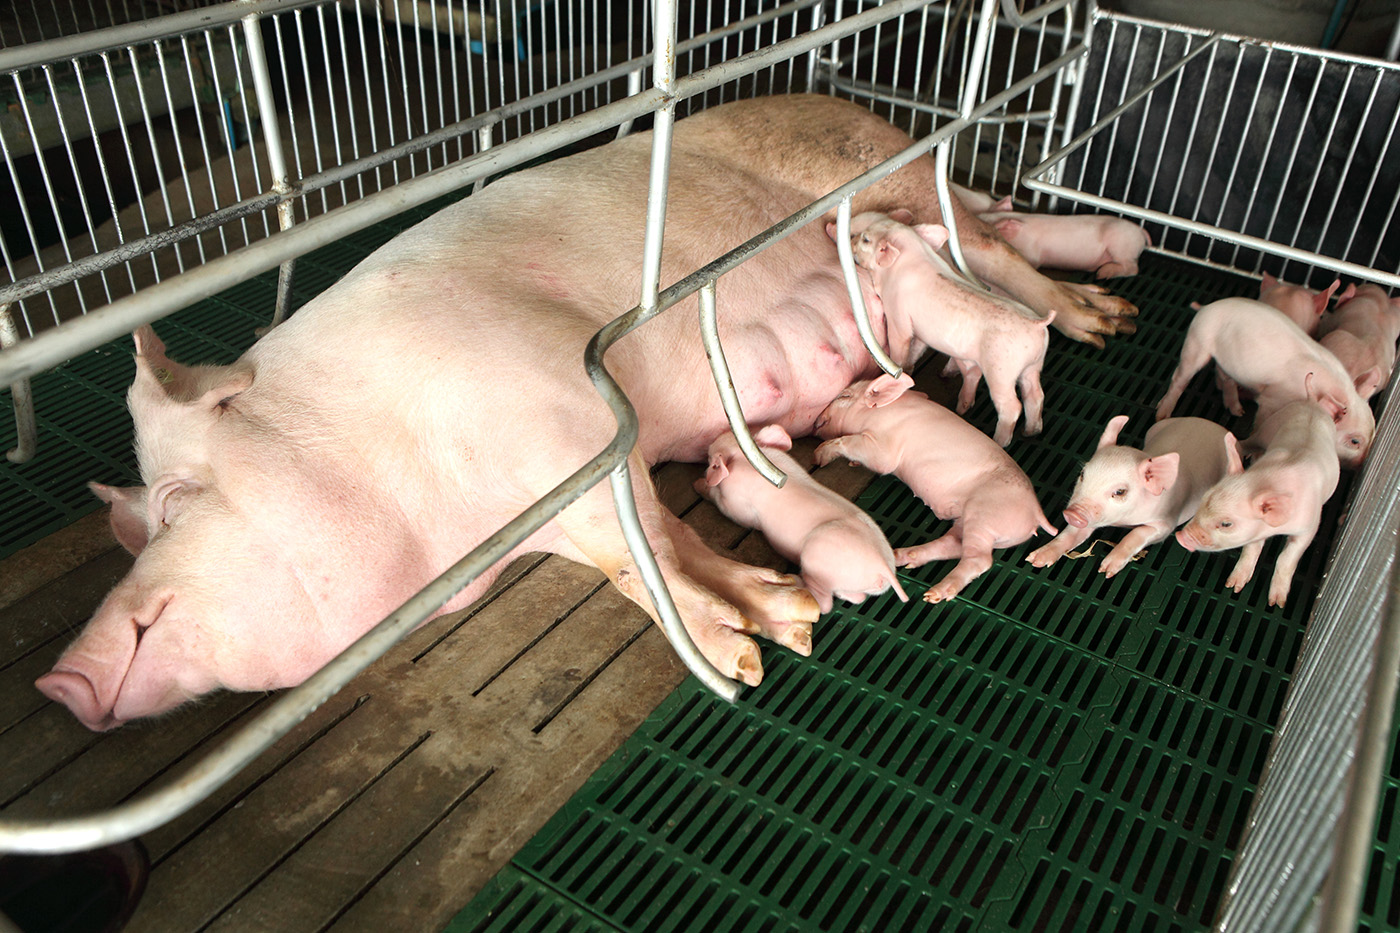 In lactating bunch of little piglets pigs 50818